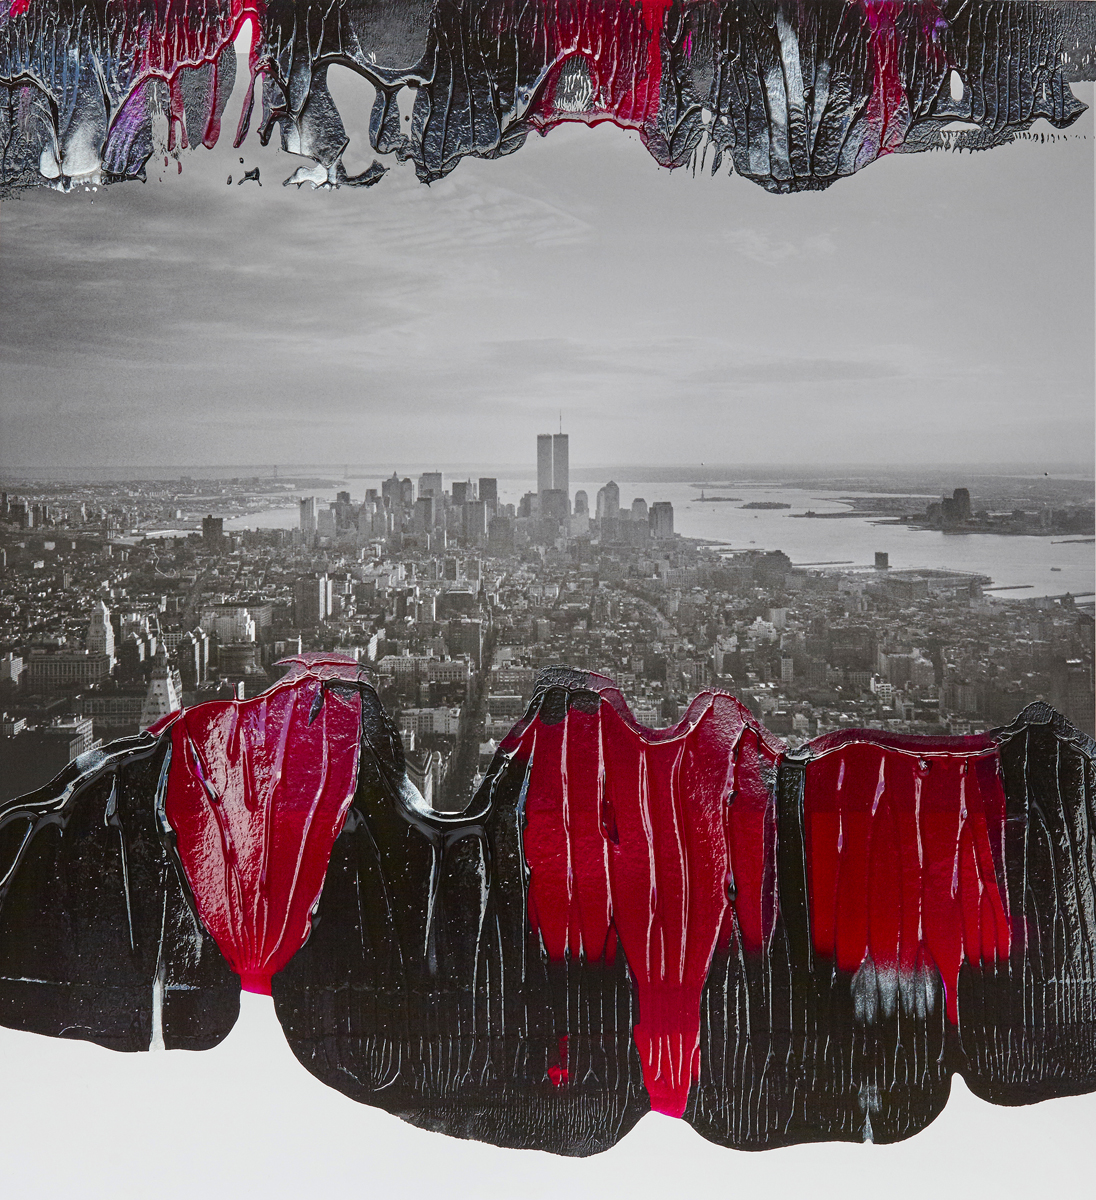 #peterwesth-Peter-Westh-@peterwesth-twin-towers-#twintowers-newyork-popart-9:11-anniversary-painting-fineart-photography